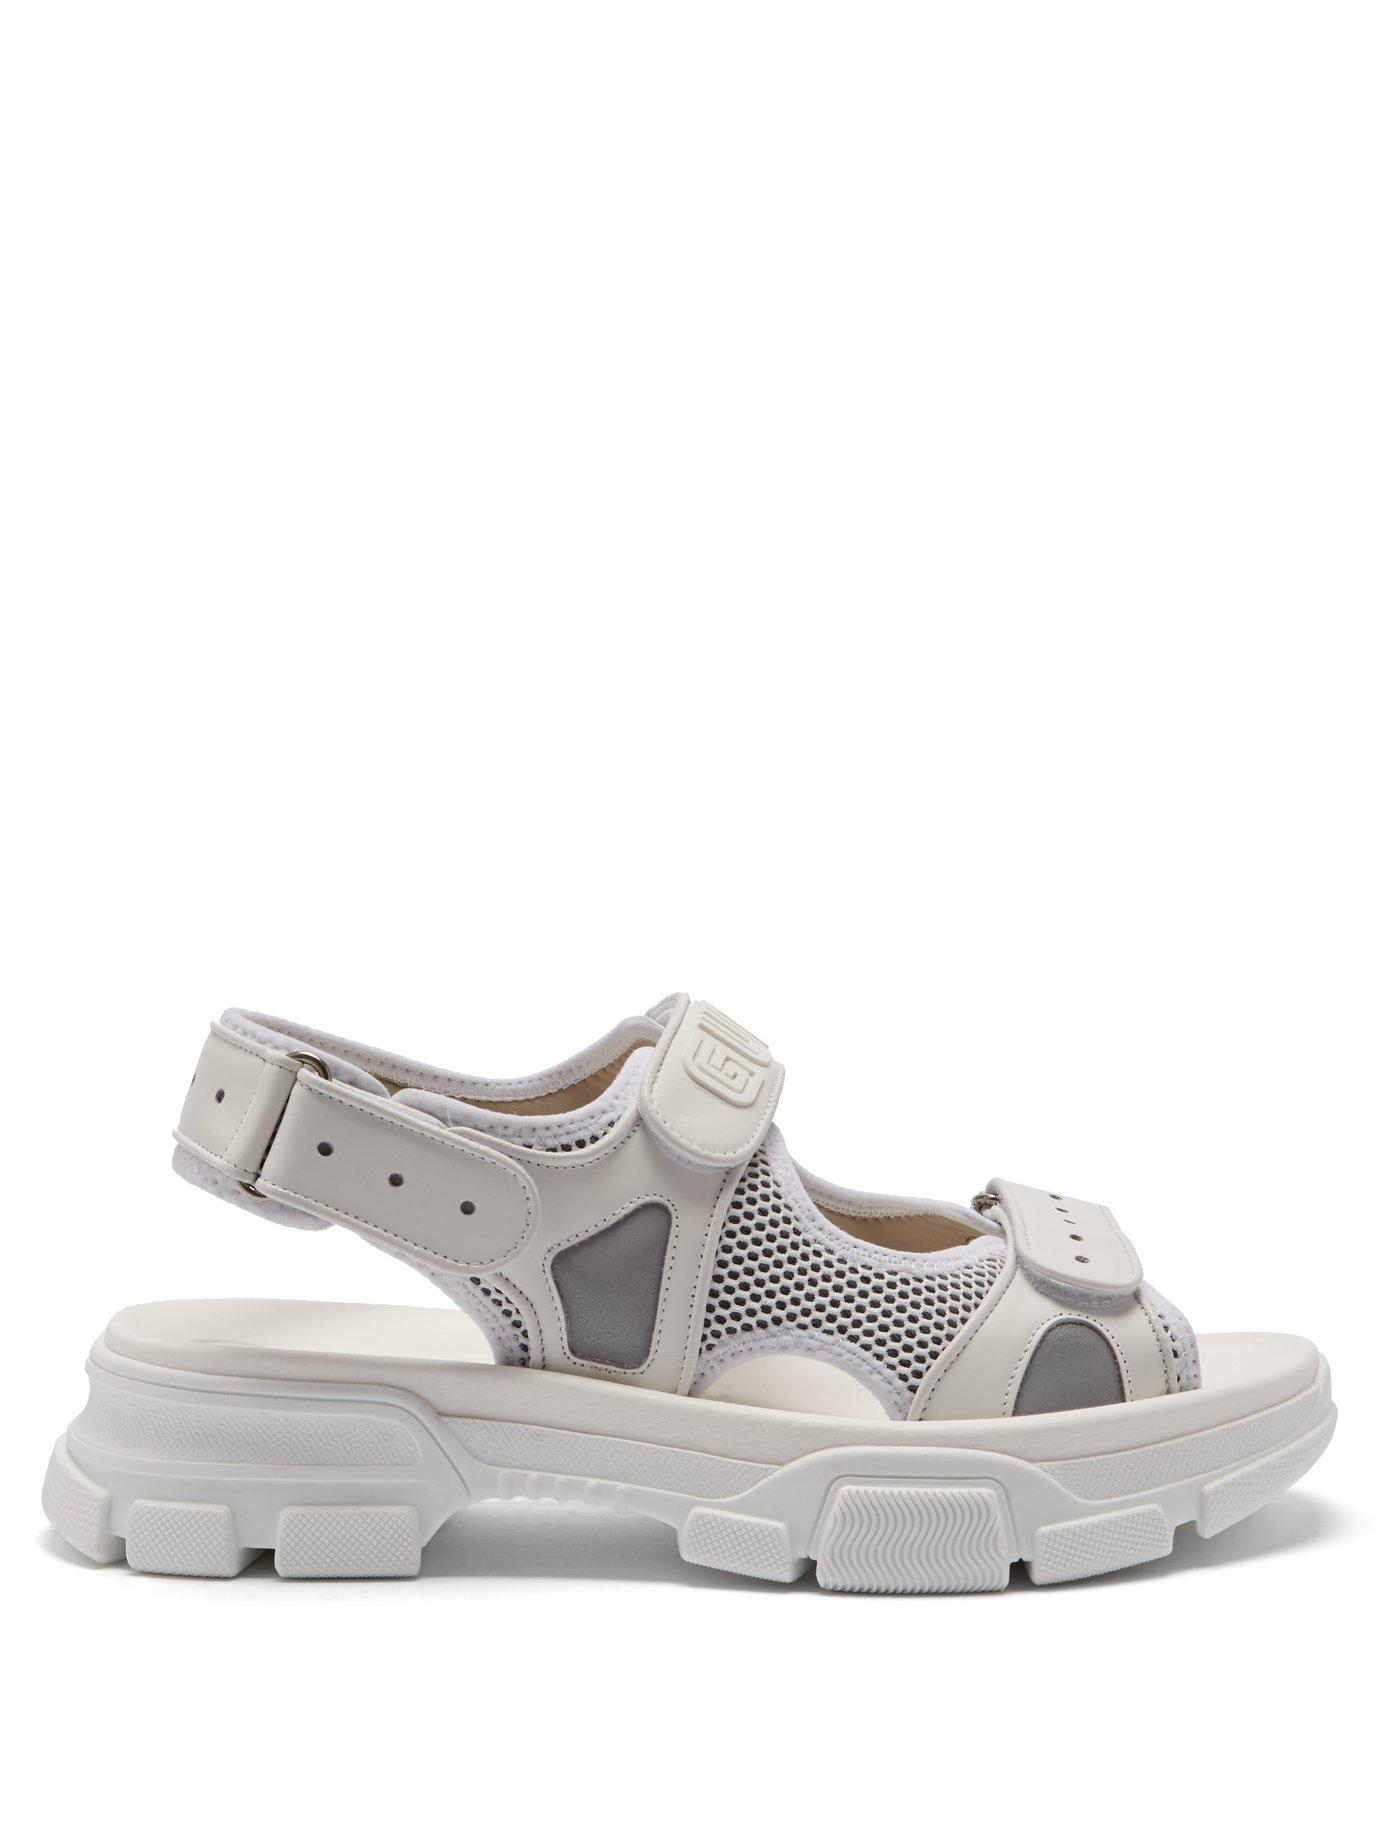 4c4e27b22 Gucci Leather And Mesh Sandals in White for Men - Lyst